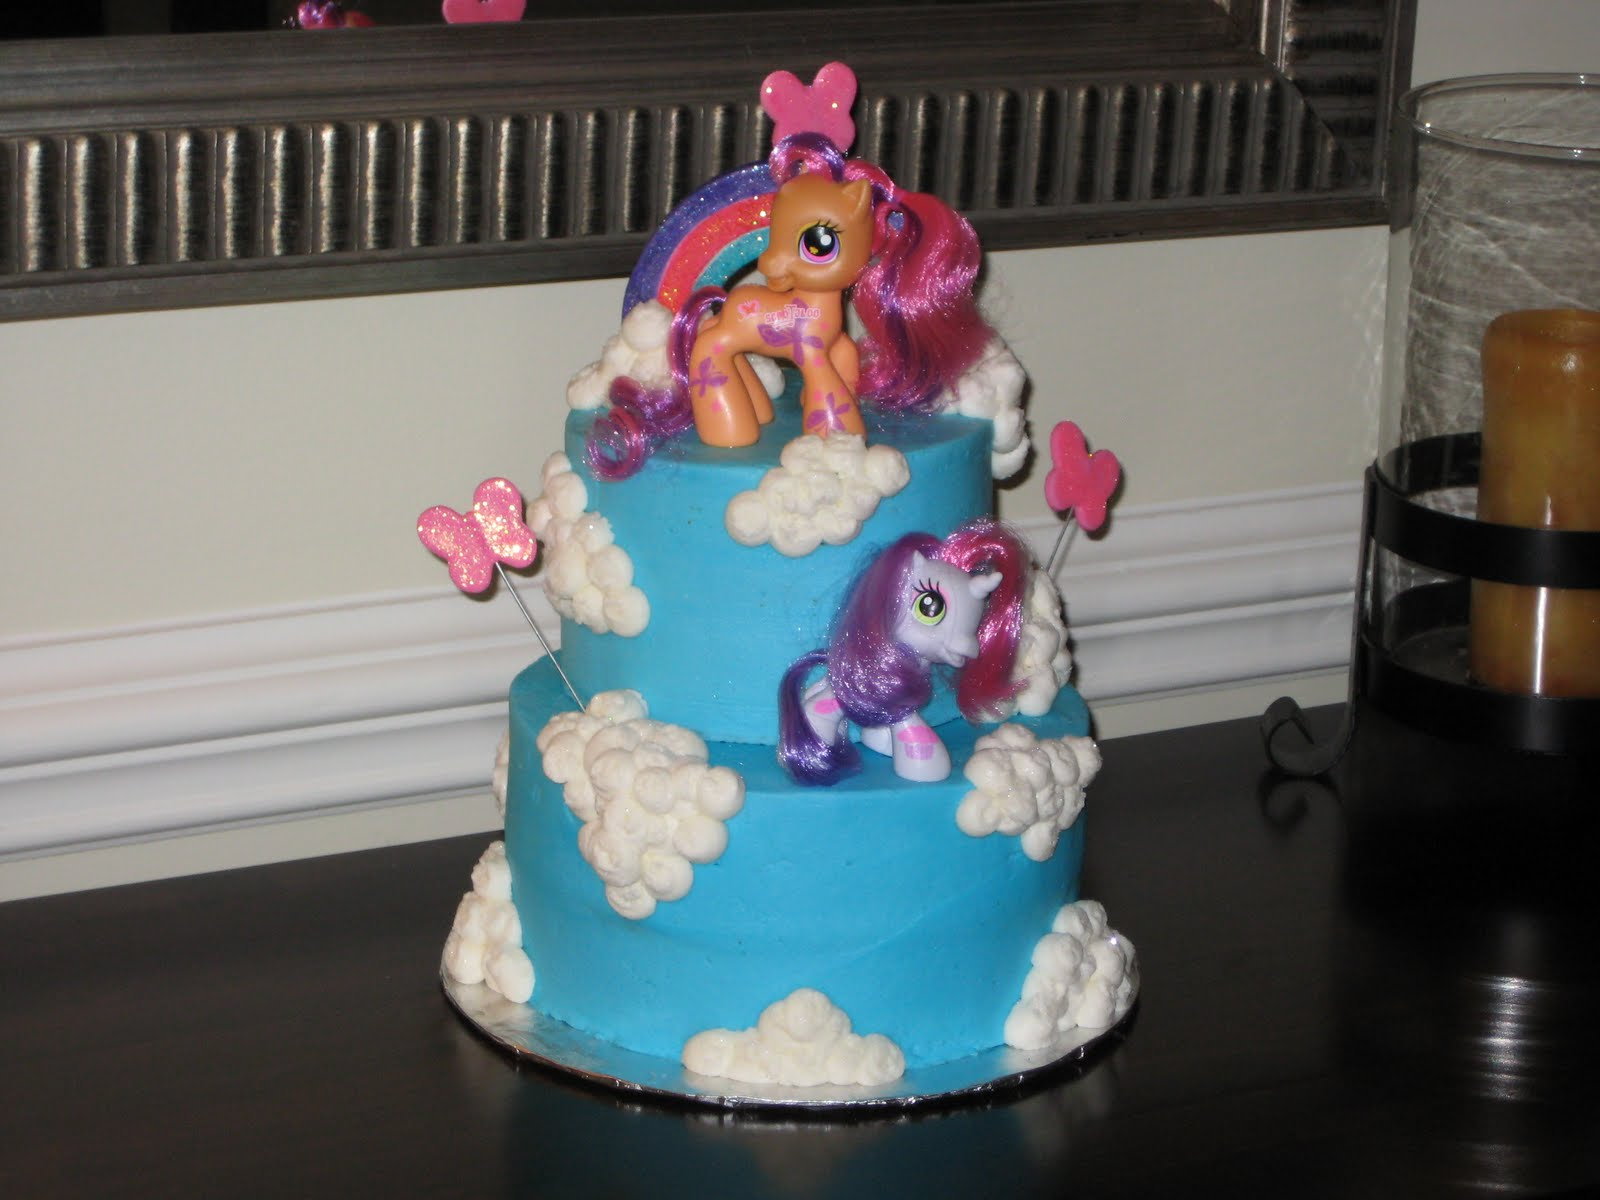 Cake Designs My Little Pony : ~fOr THe lOvE oF CakE~: My Little Pony Birthday Cake